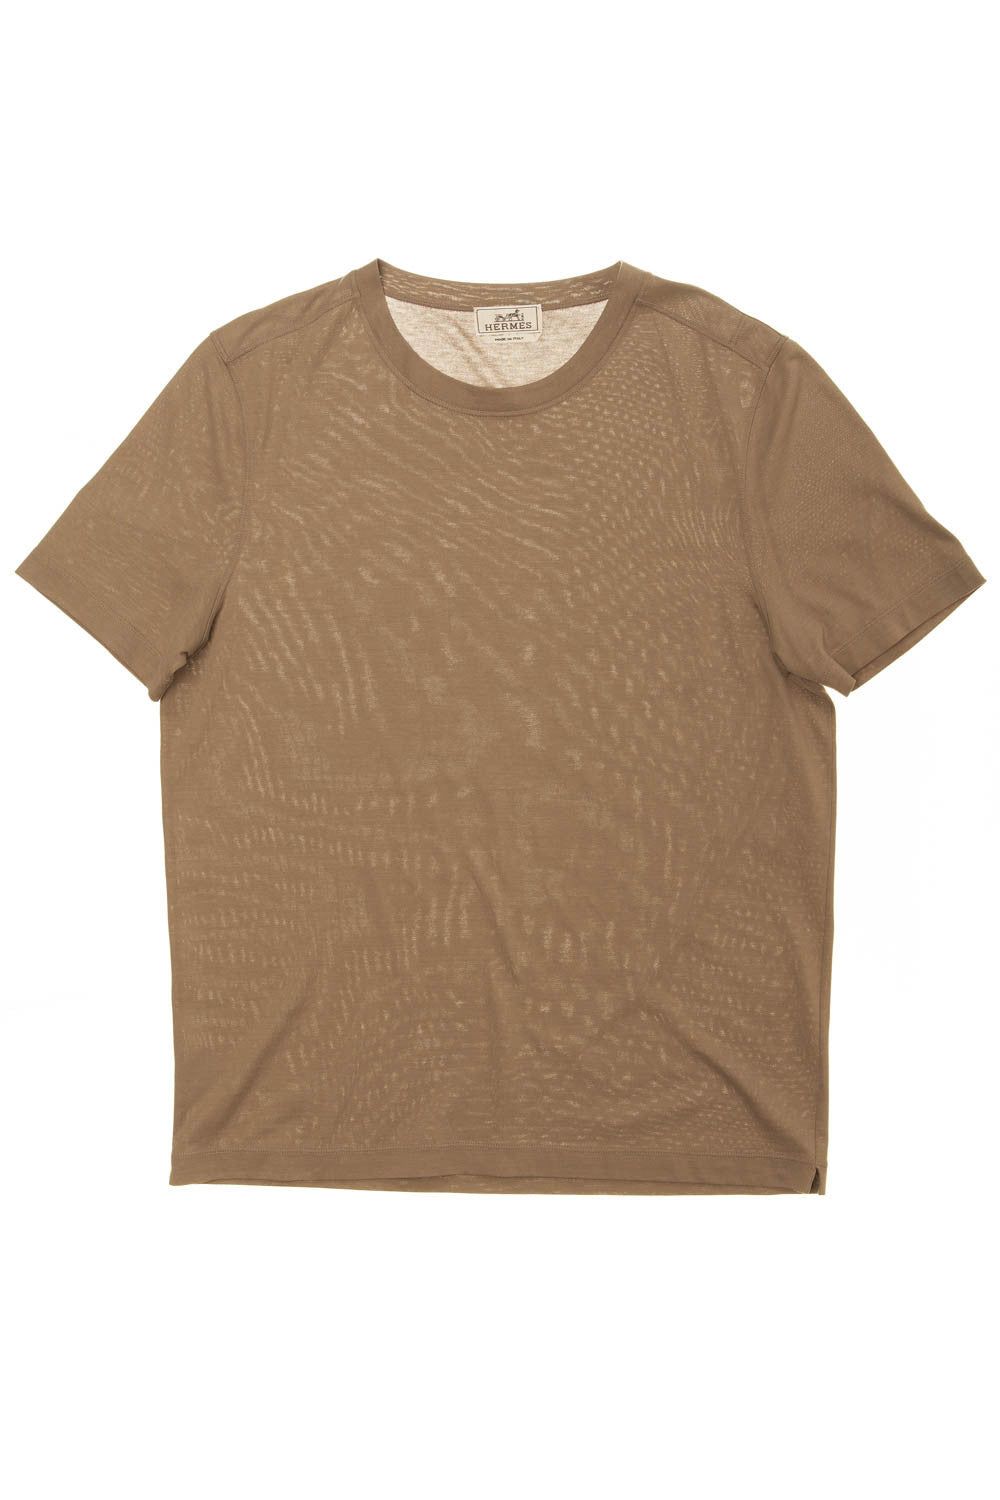 Authentic Hermes - Beige Tee Shirt - L